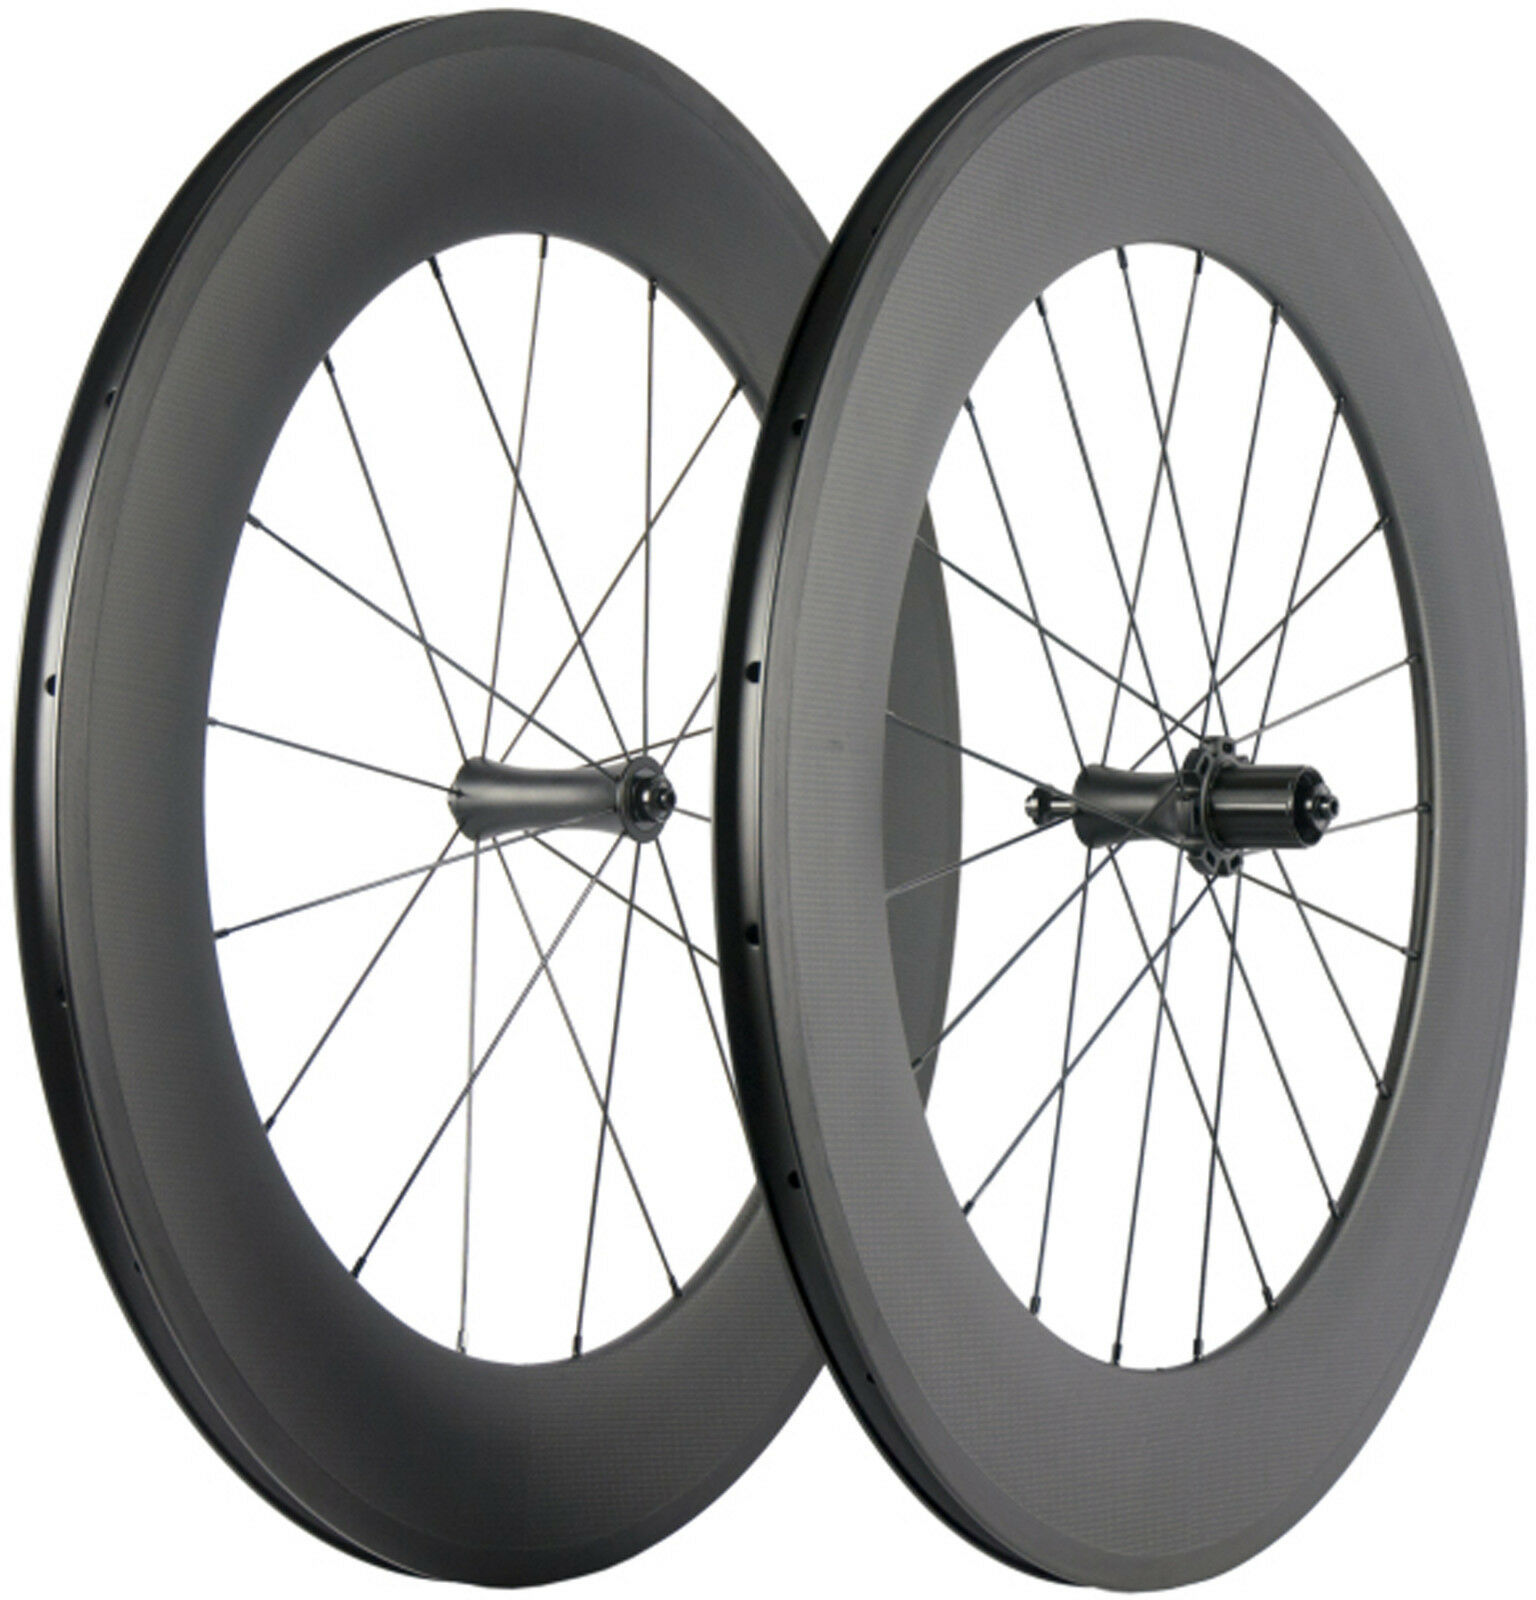 88mm Full Carbon Front+Rear  Wheelset 700C 23mm Width R7 Hub Shimano Campagnolo  new branded